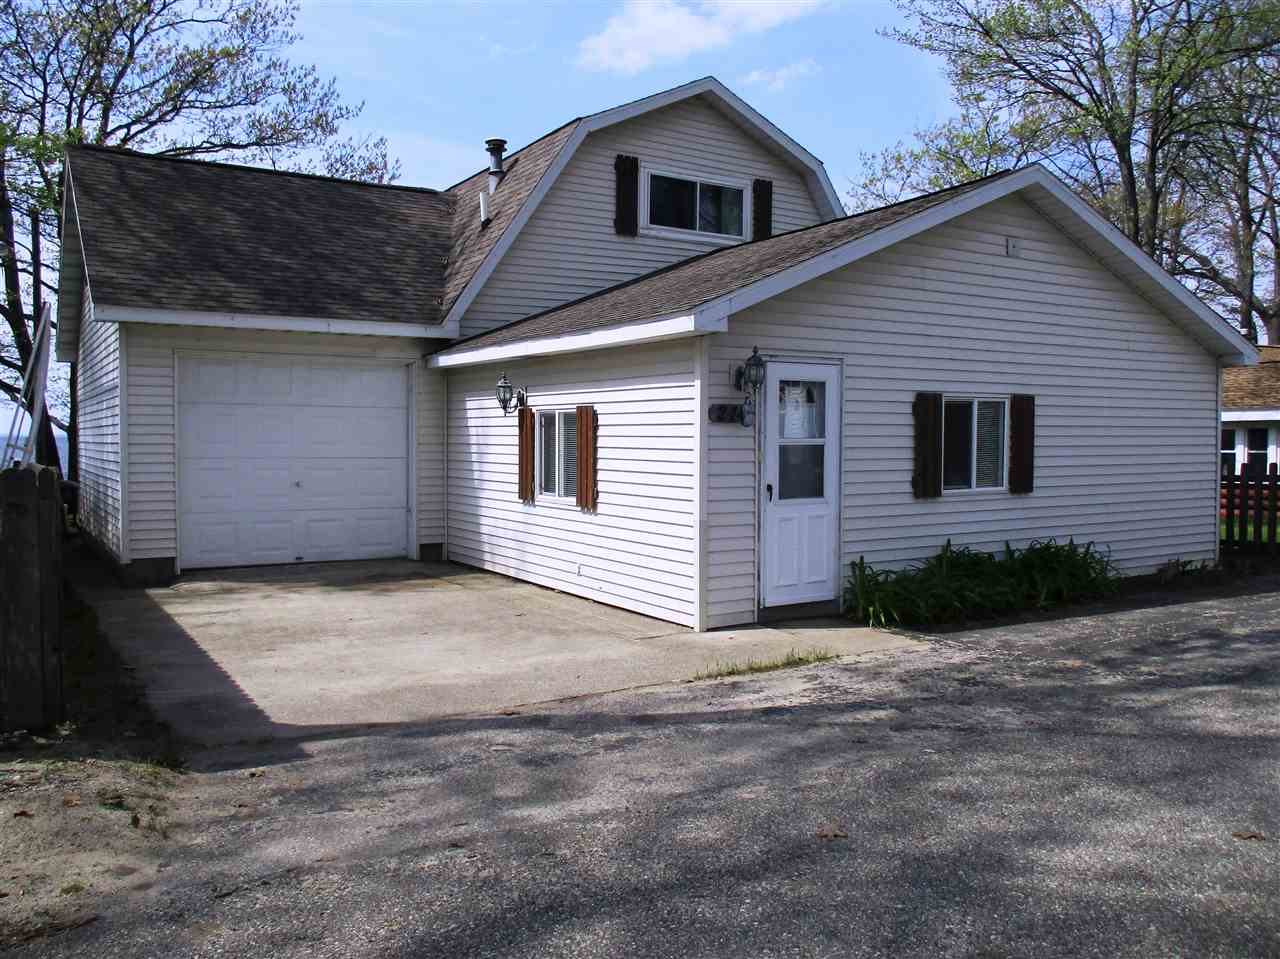 houghton lake heights lesbian singles Zillow has 6 homes for sale in houghton lake heights mi view listing photos, review sales history, and use our detailed real estate filters to find the perfect place.